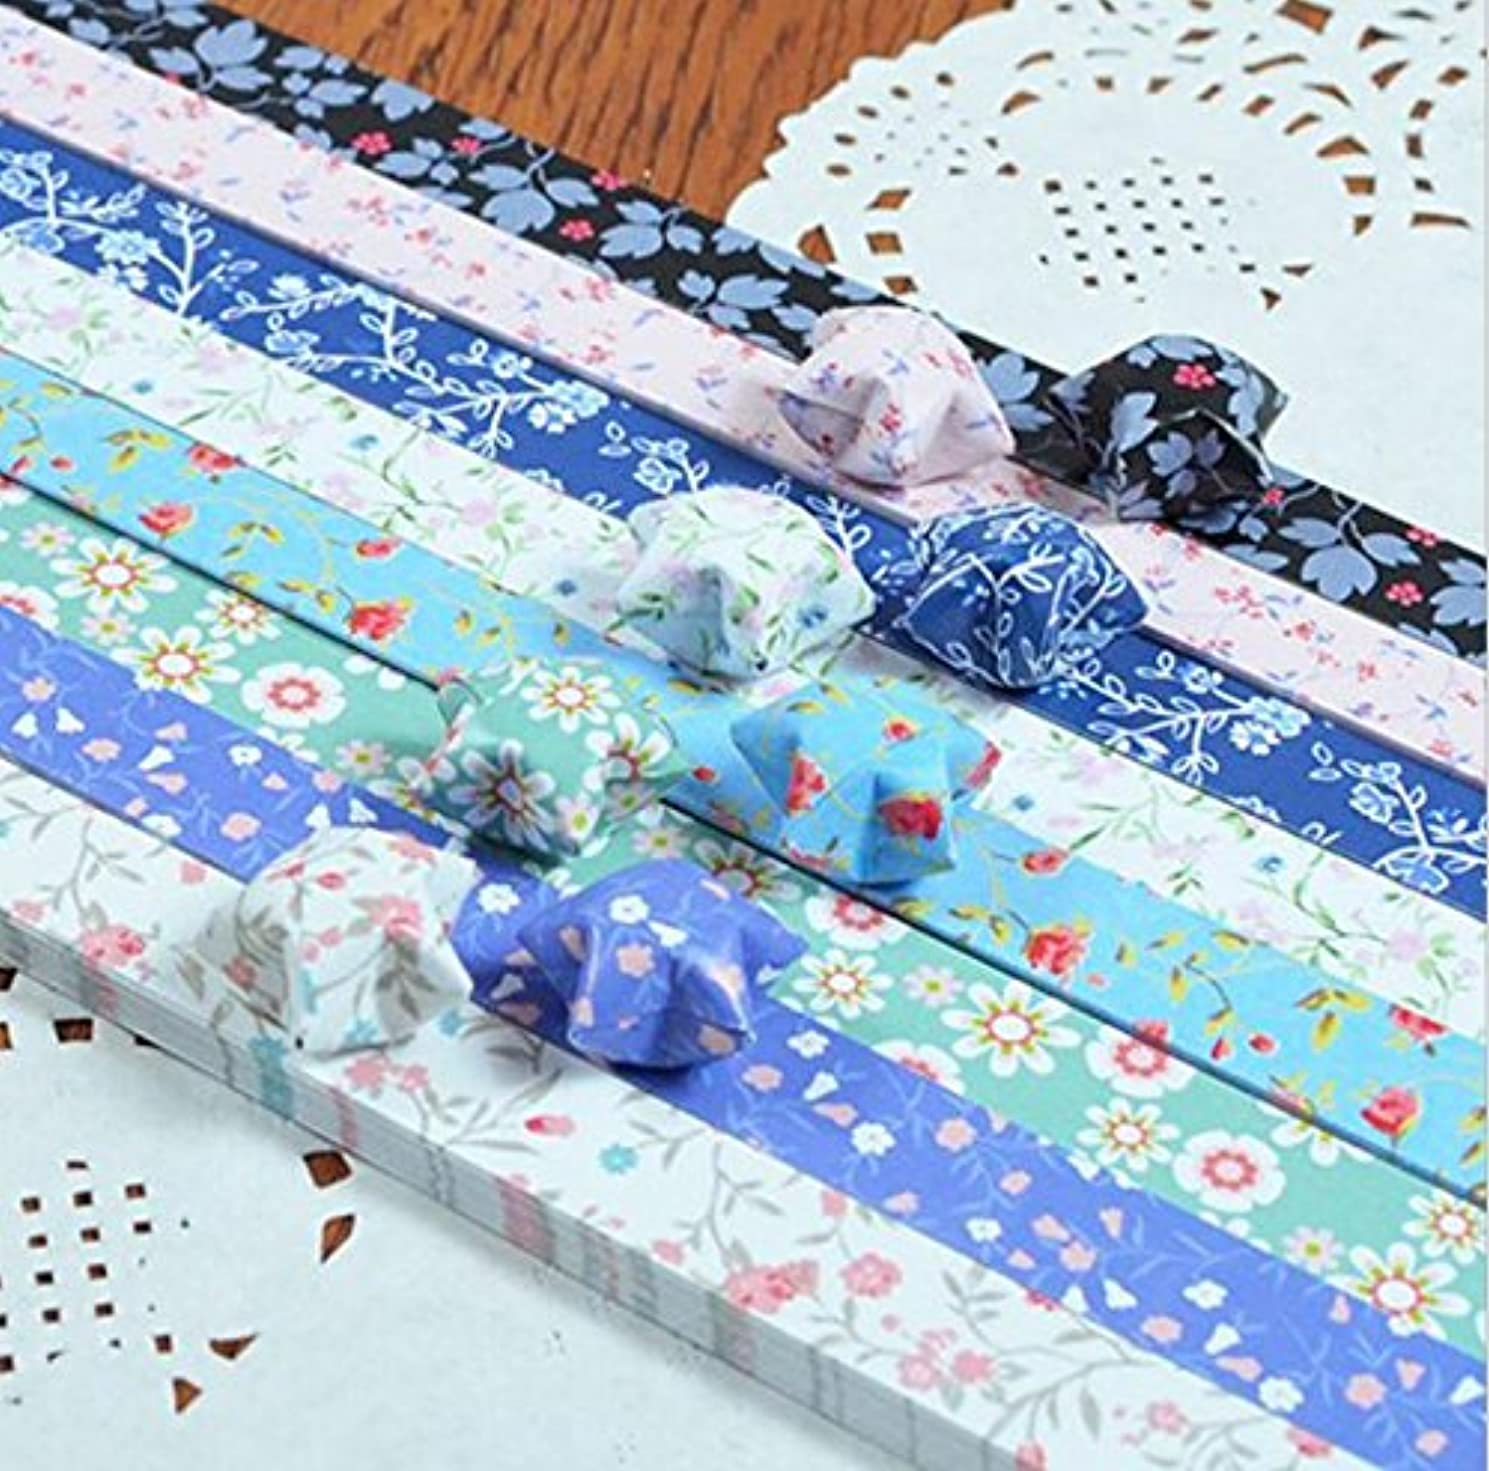 HEMALL 400 Star Paper Lucky Star Origami Paper DIY Handmade Orgami Paper Craft Paper,Origami Star Paper Strips, Q970